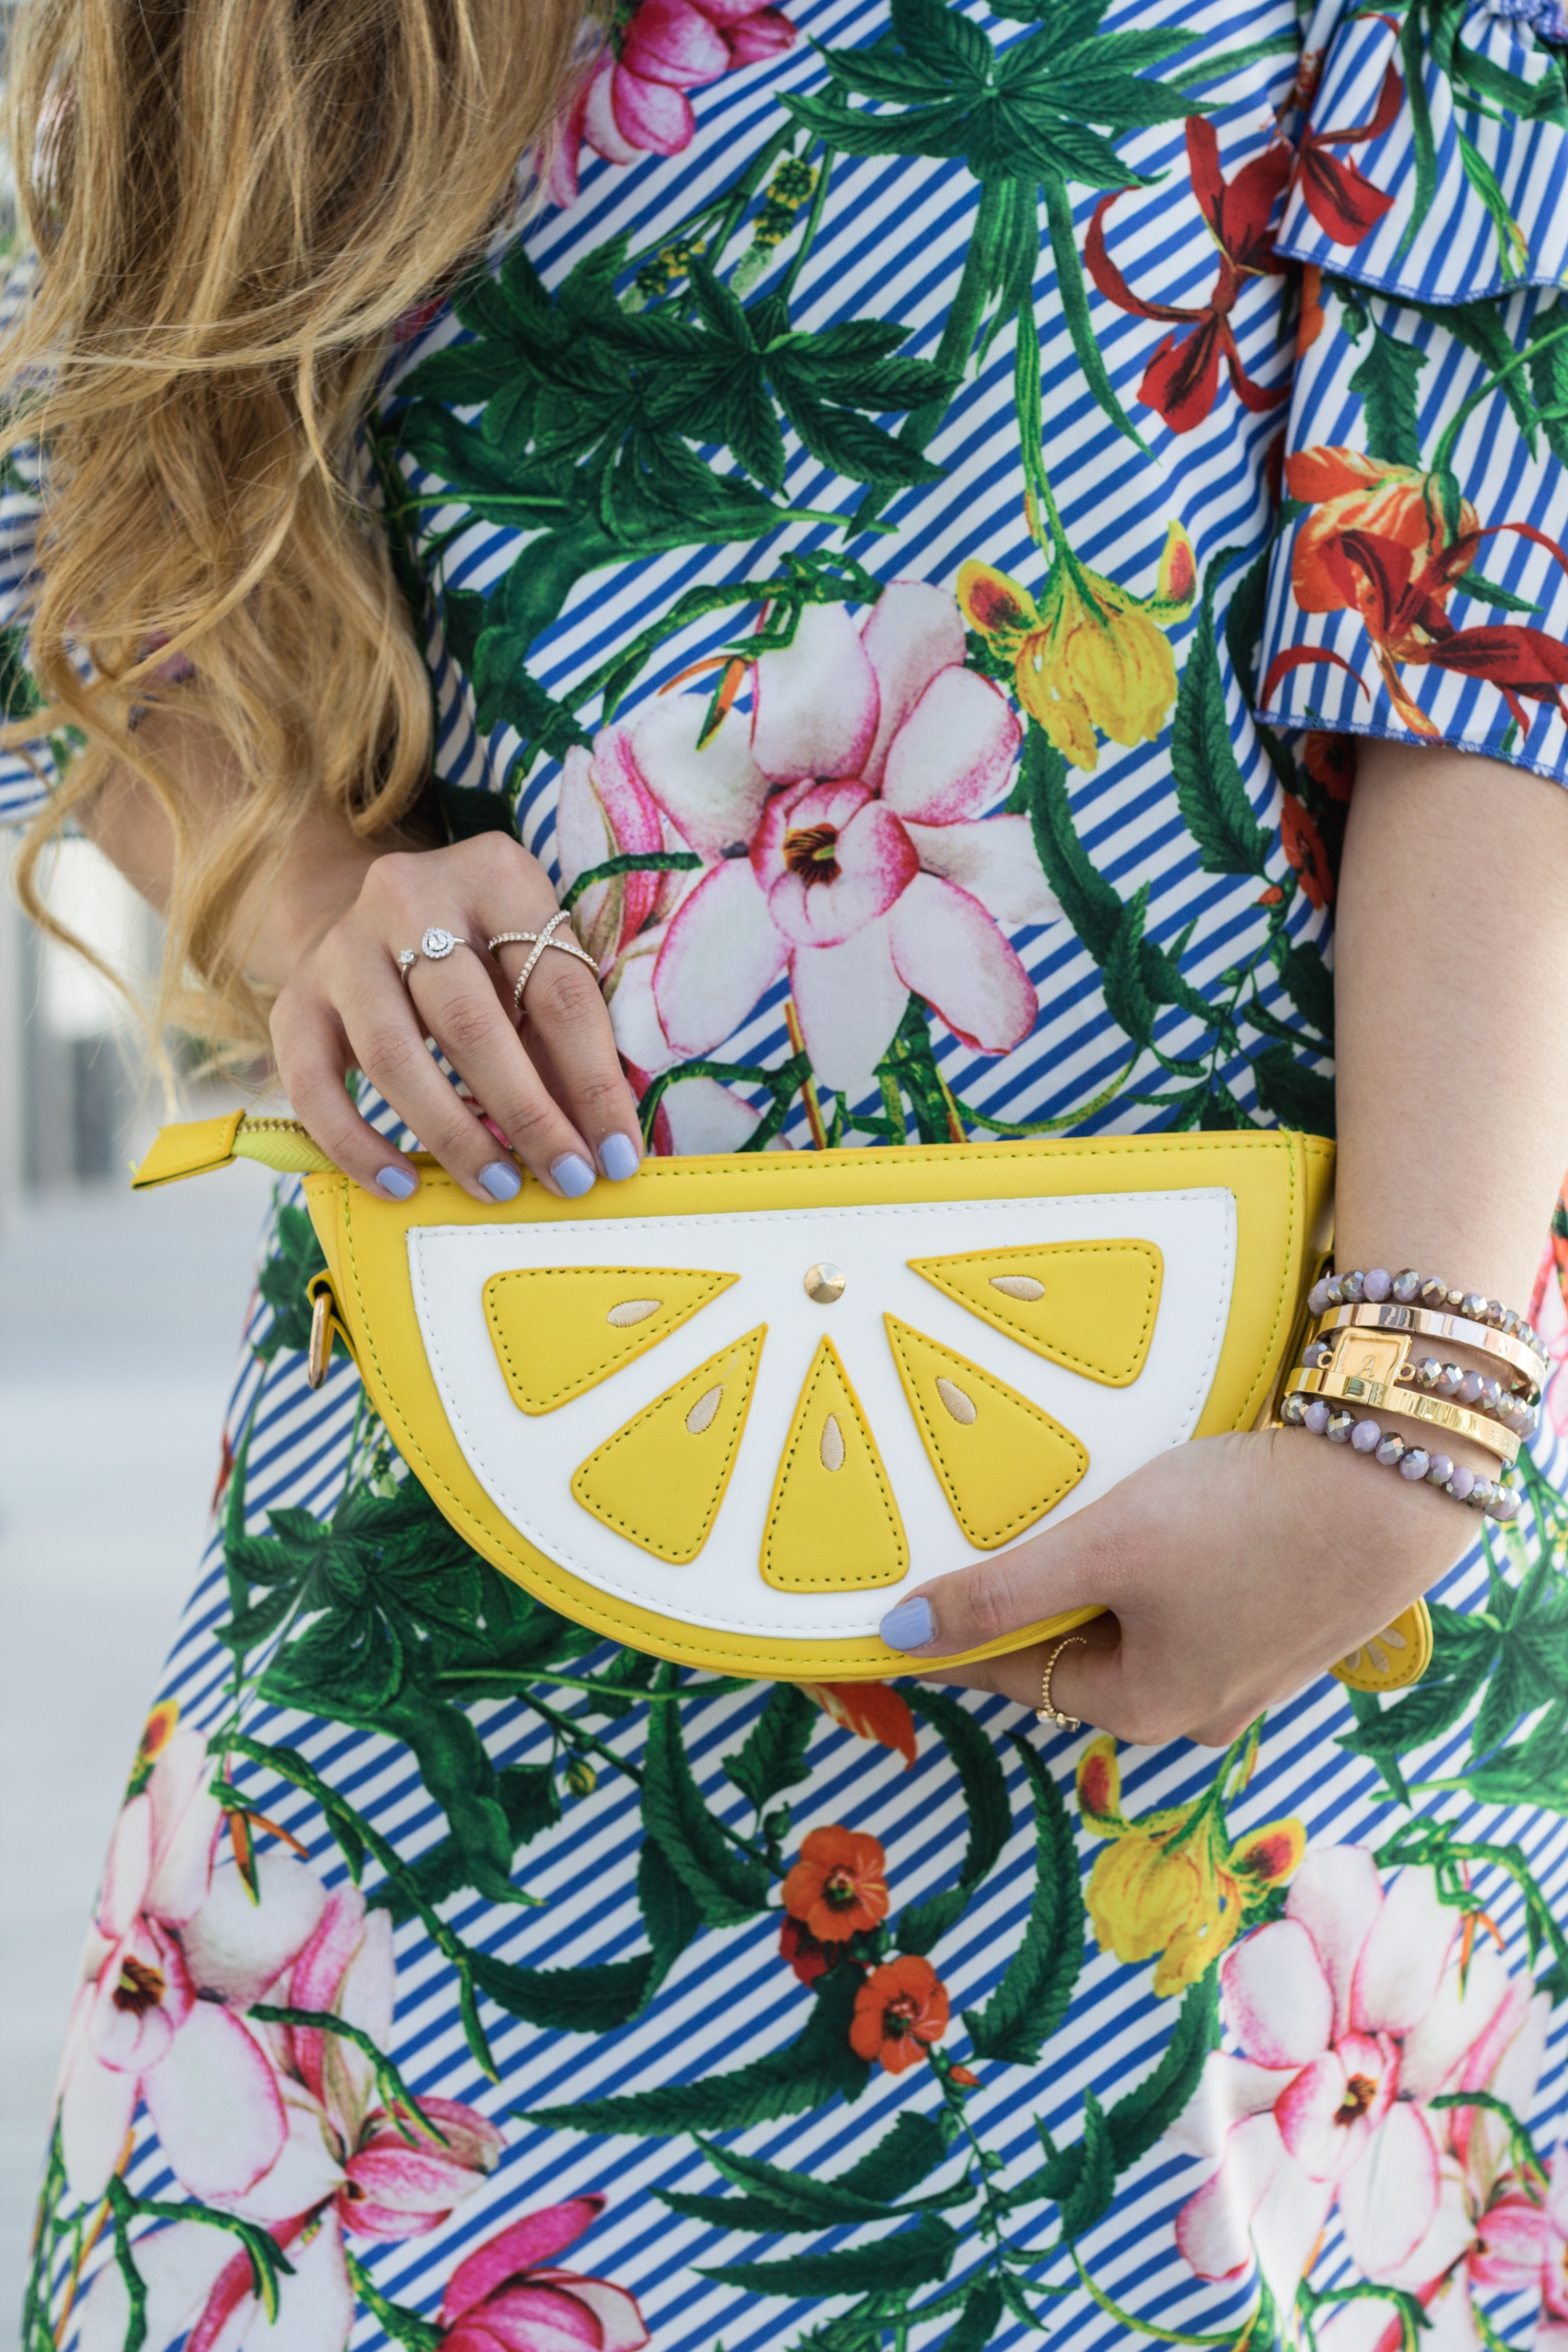 Lemon-Shaped-Clutch-Bag